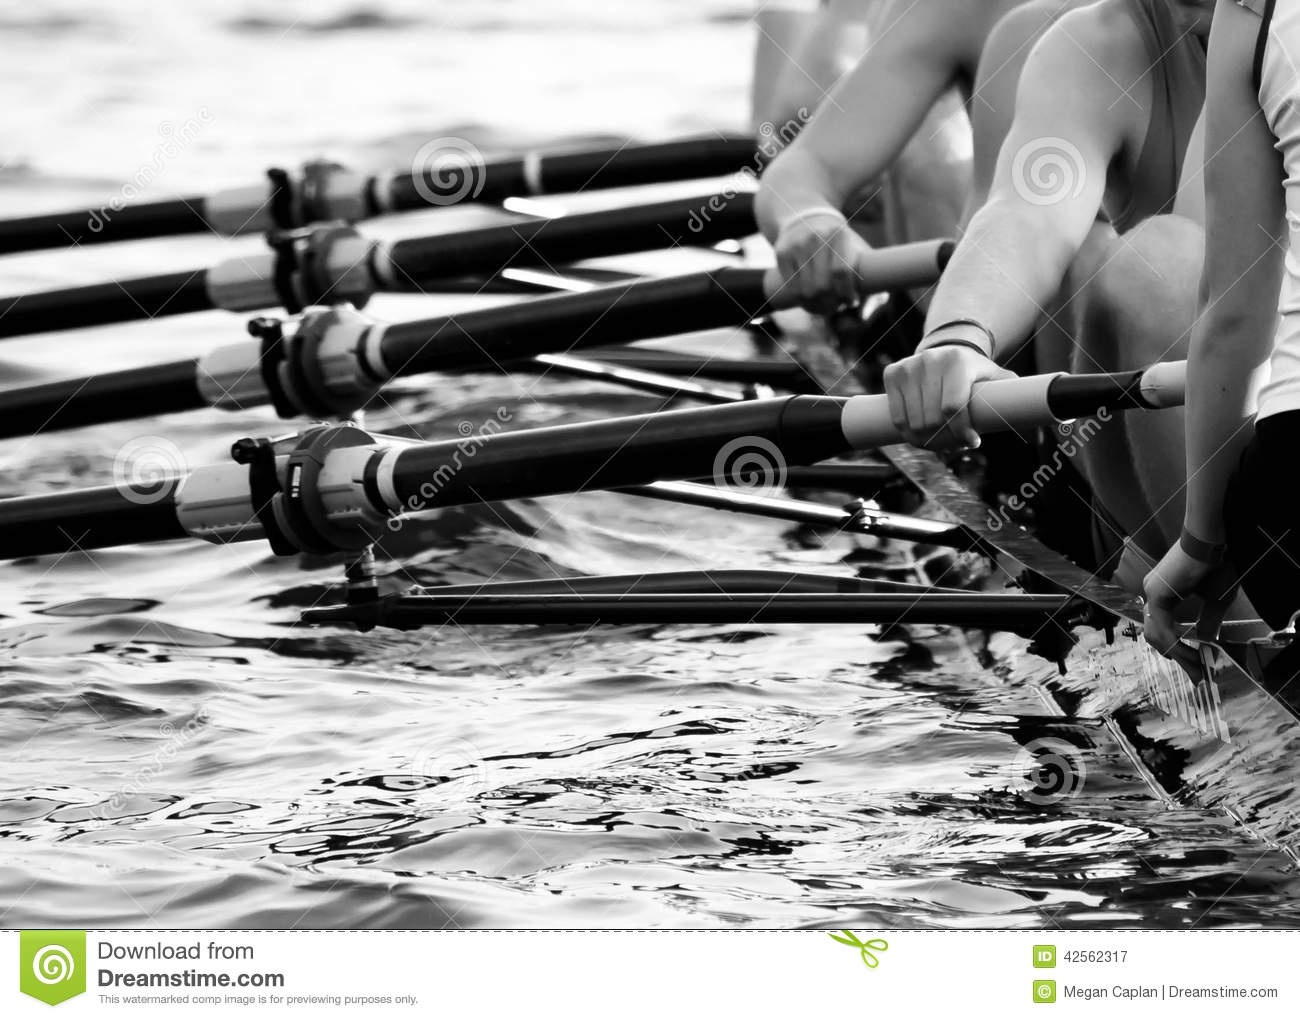 Sweep Rowing Stock Photo - Image: 42562317